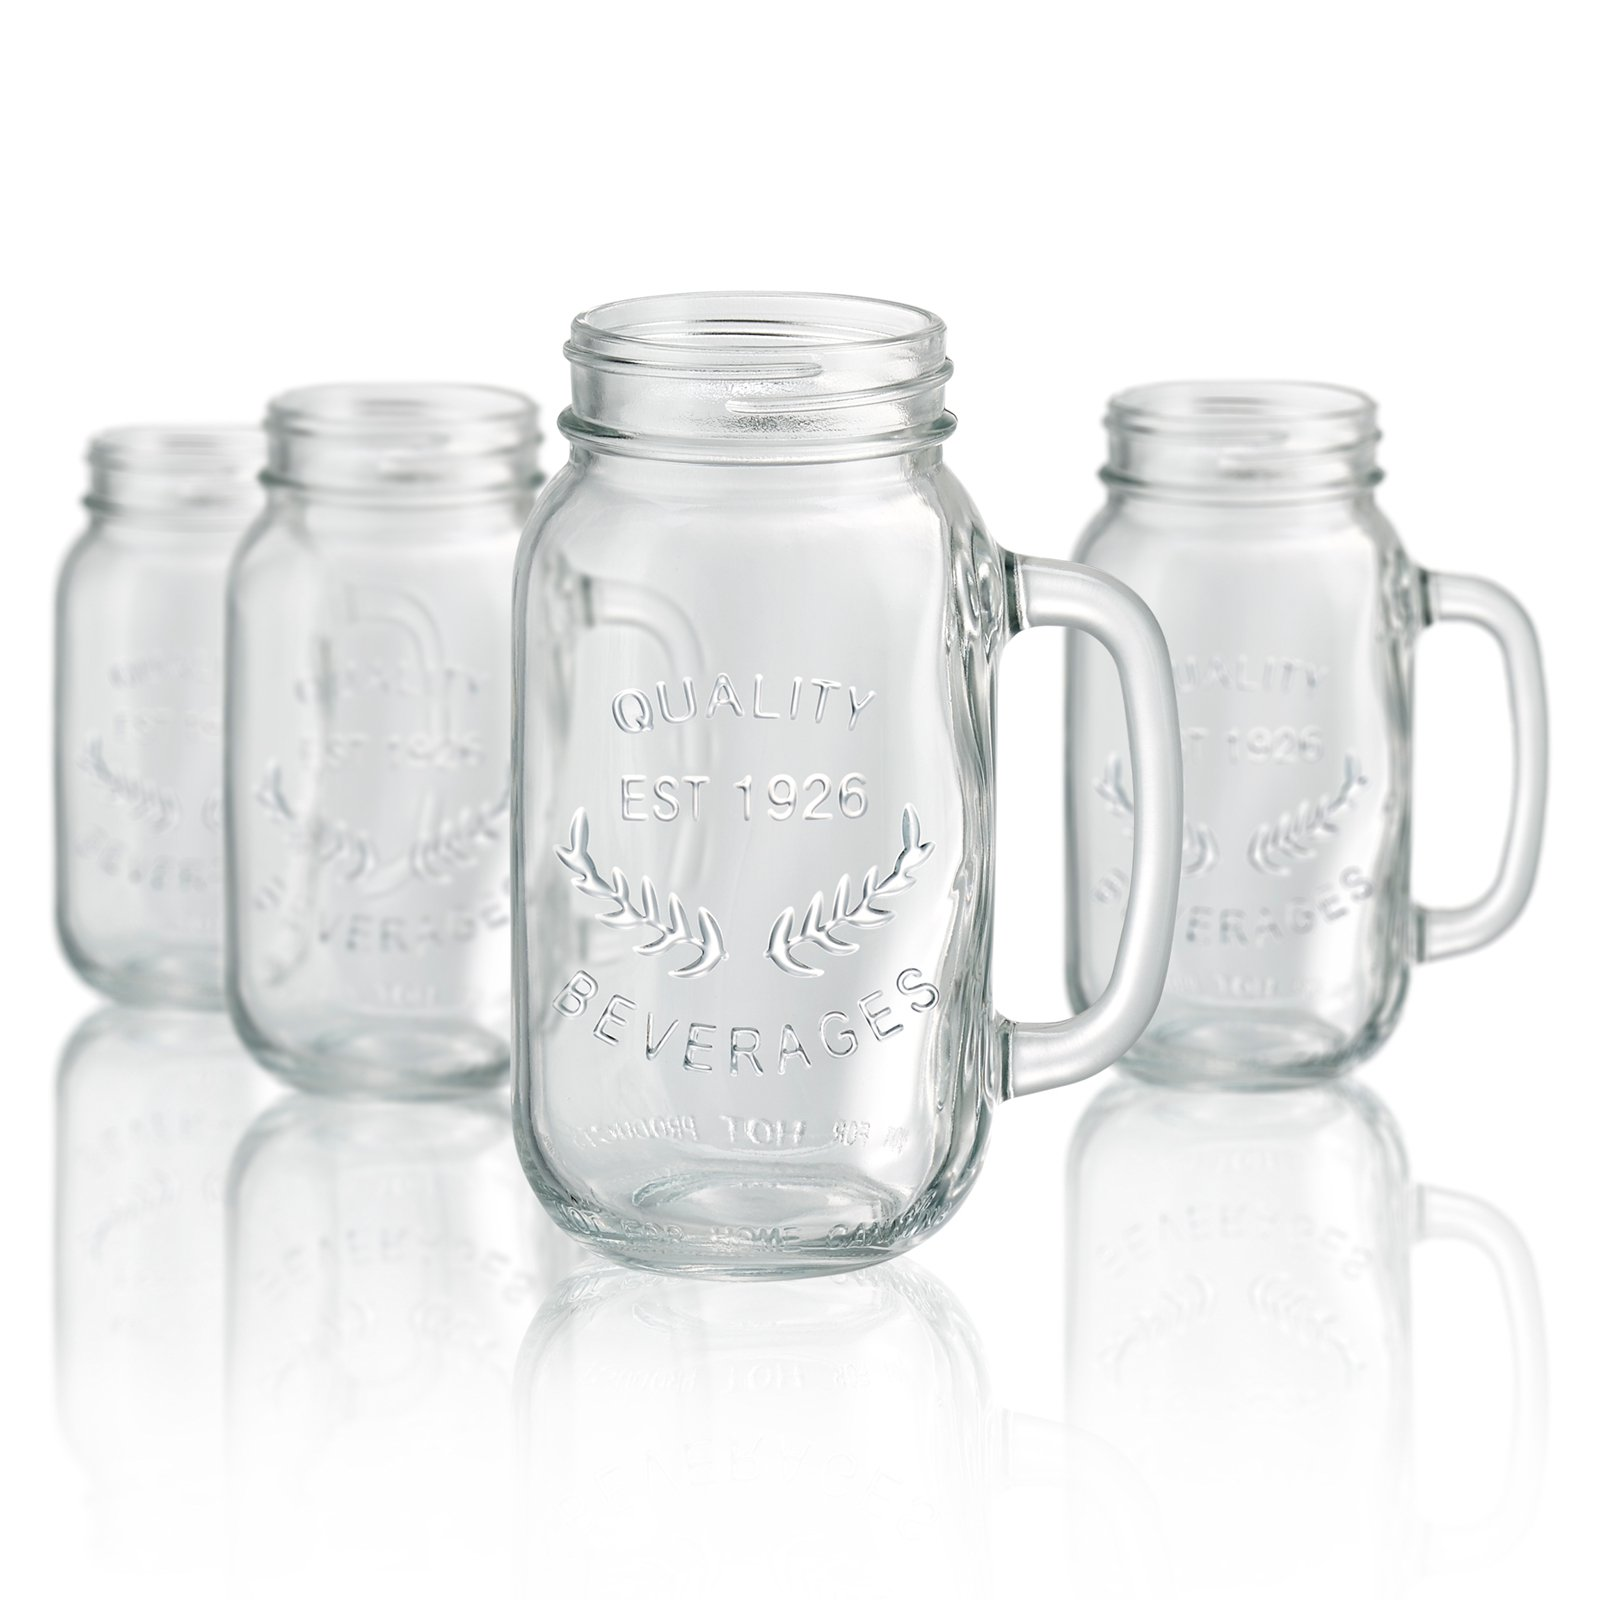 Artland Mason Jar Mug - Set of 4